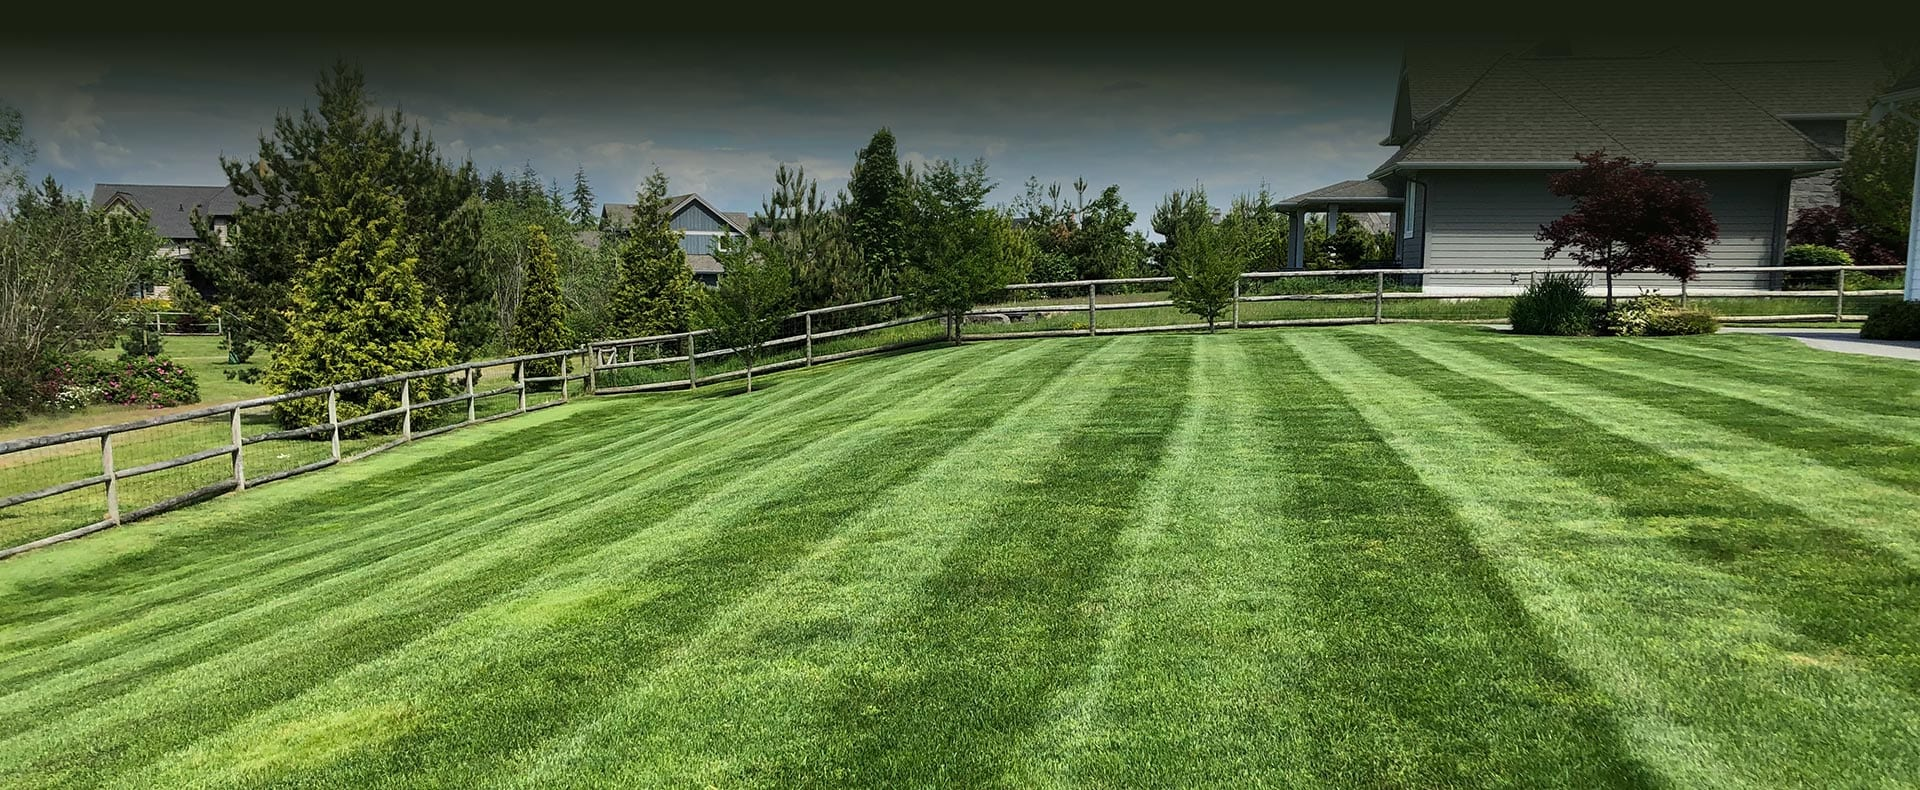 acreage-property-lawn-care